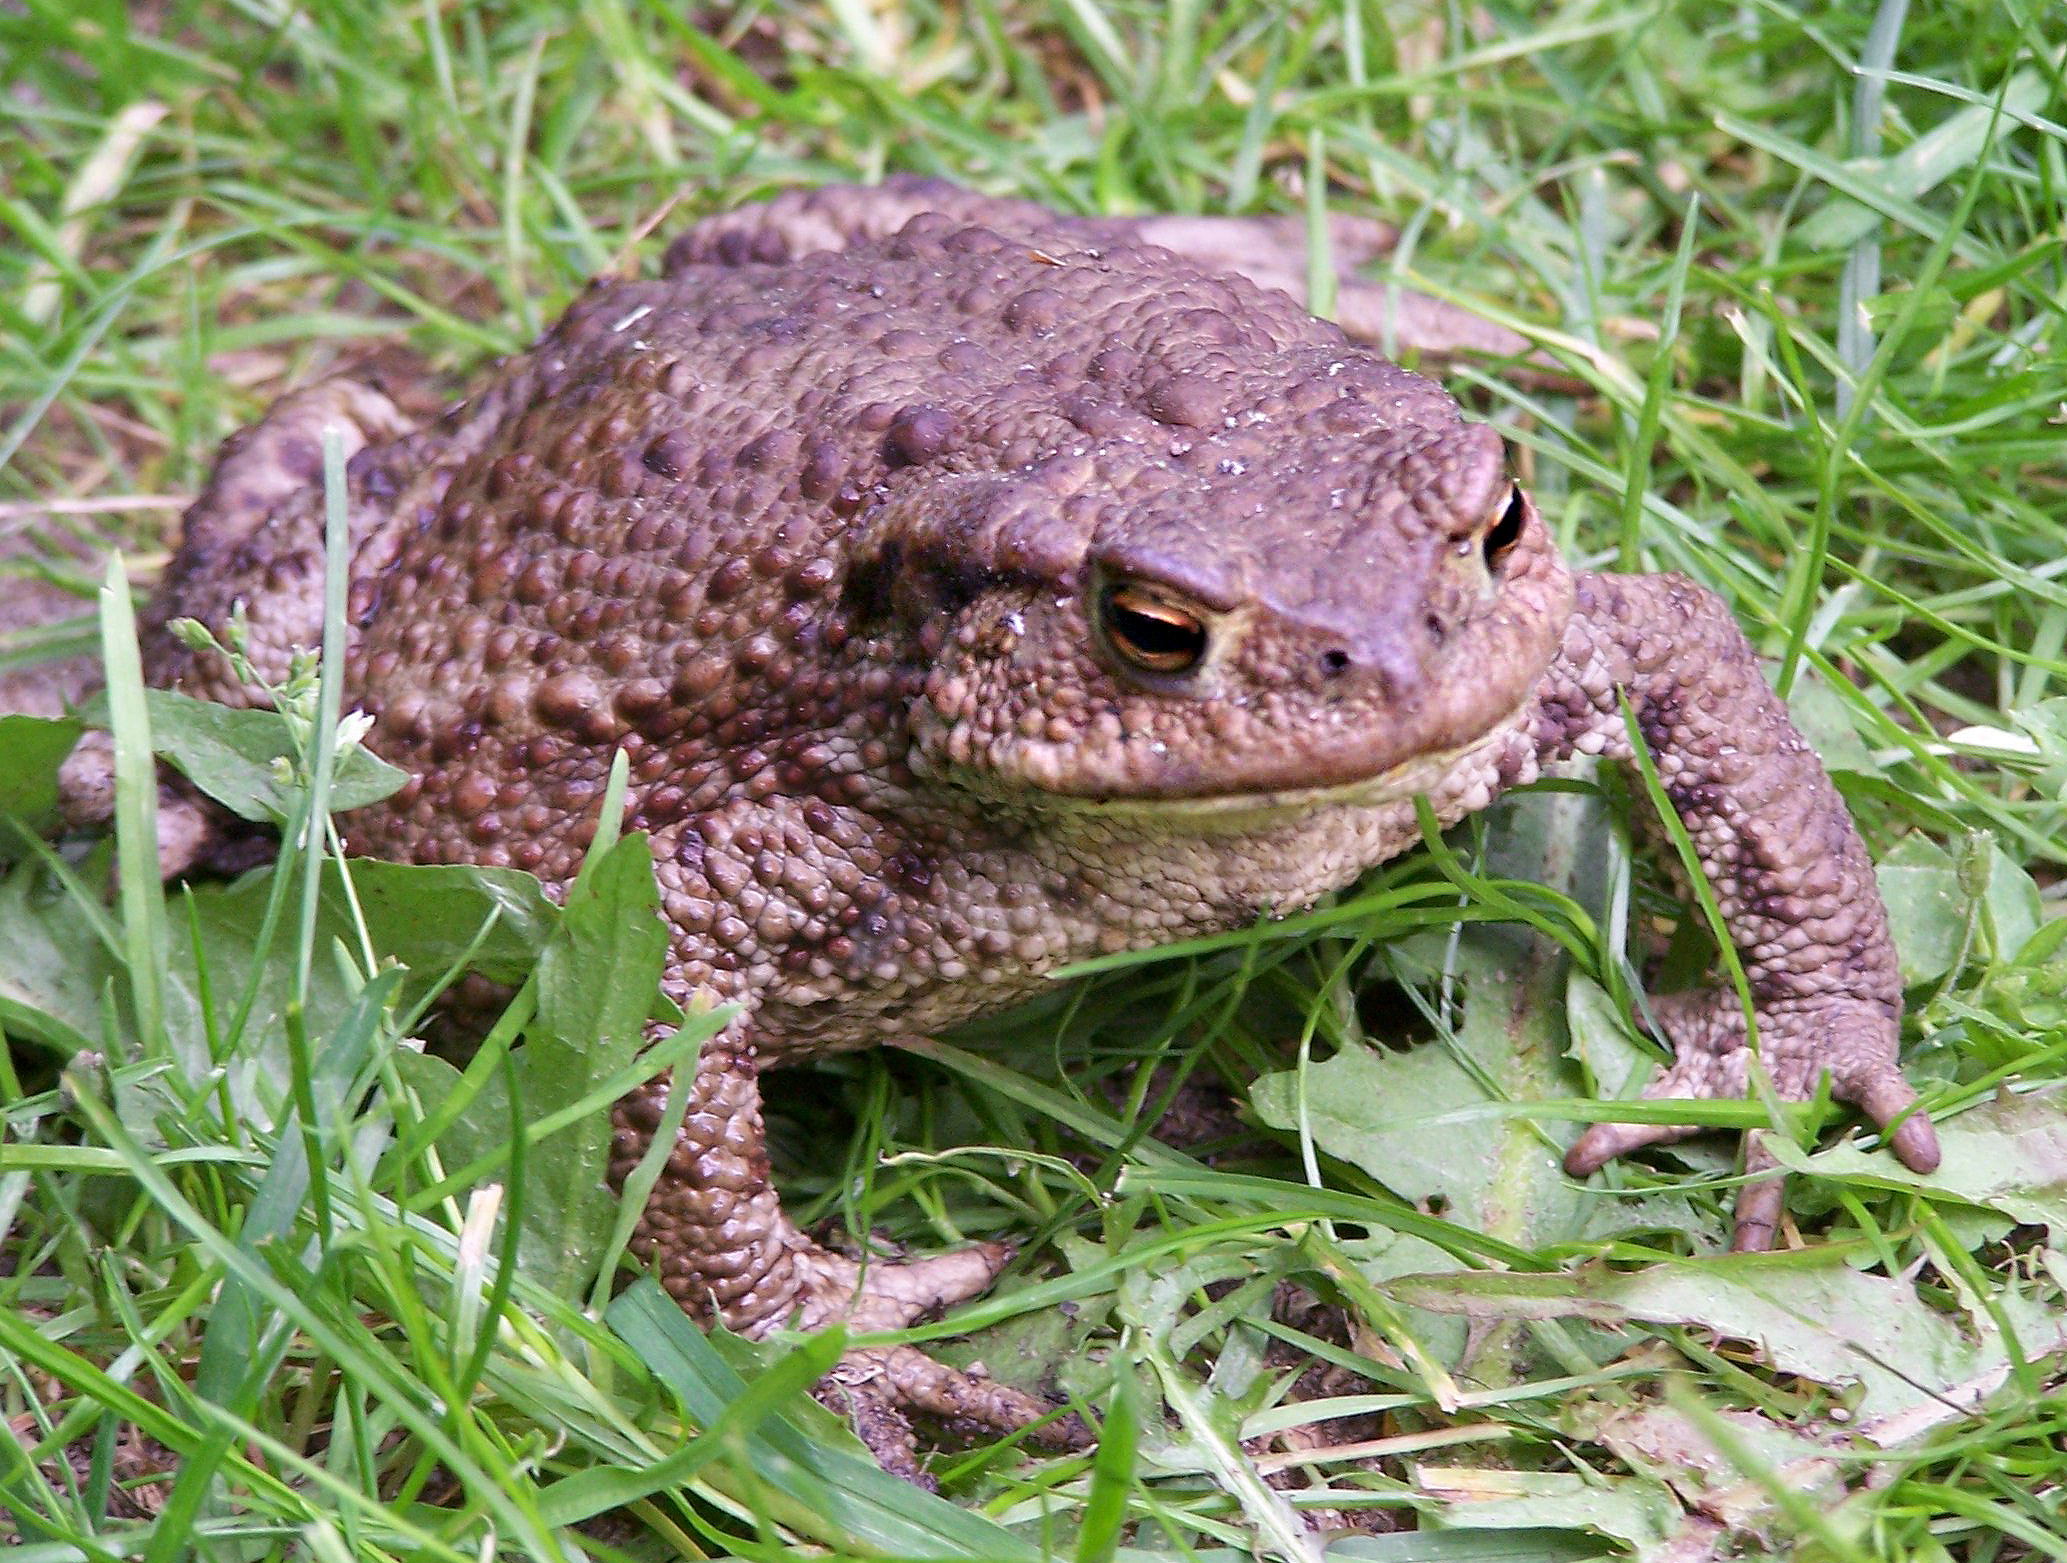 Frogs and toads are one of the three main groups of amphibians